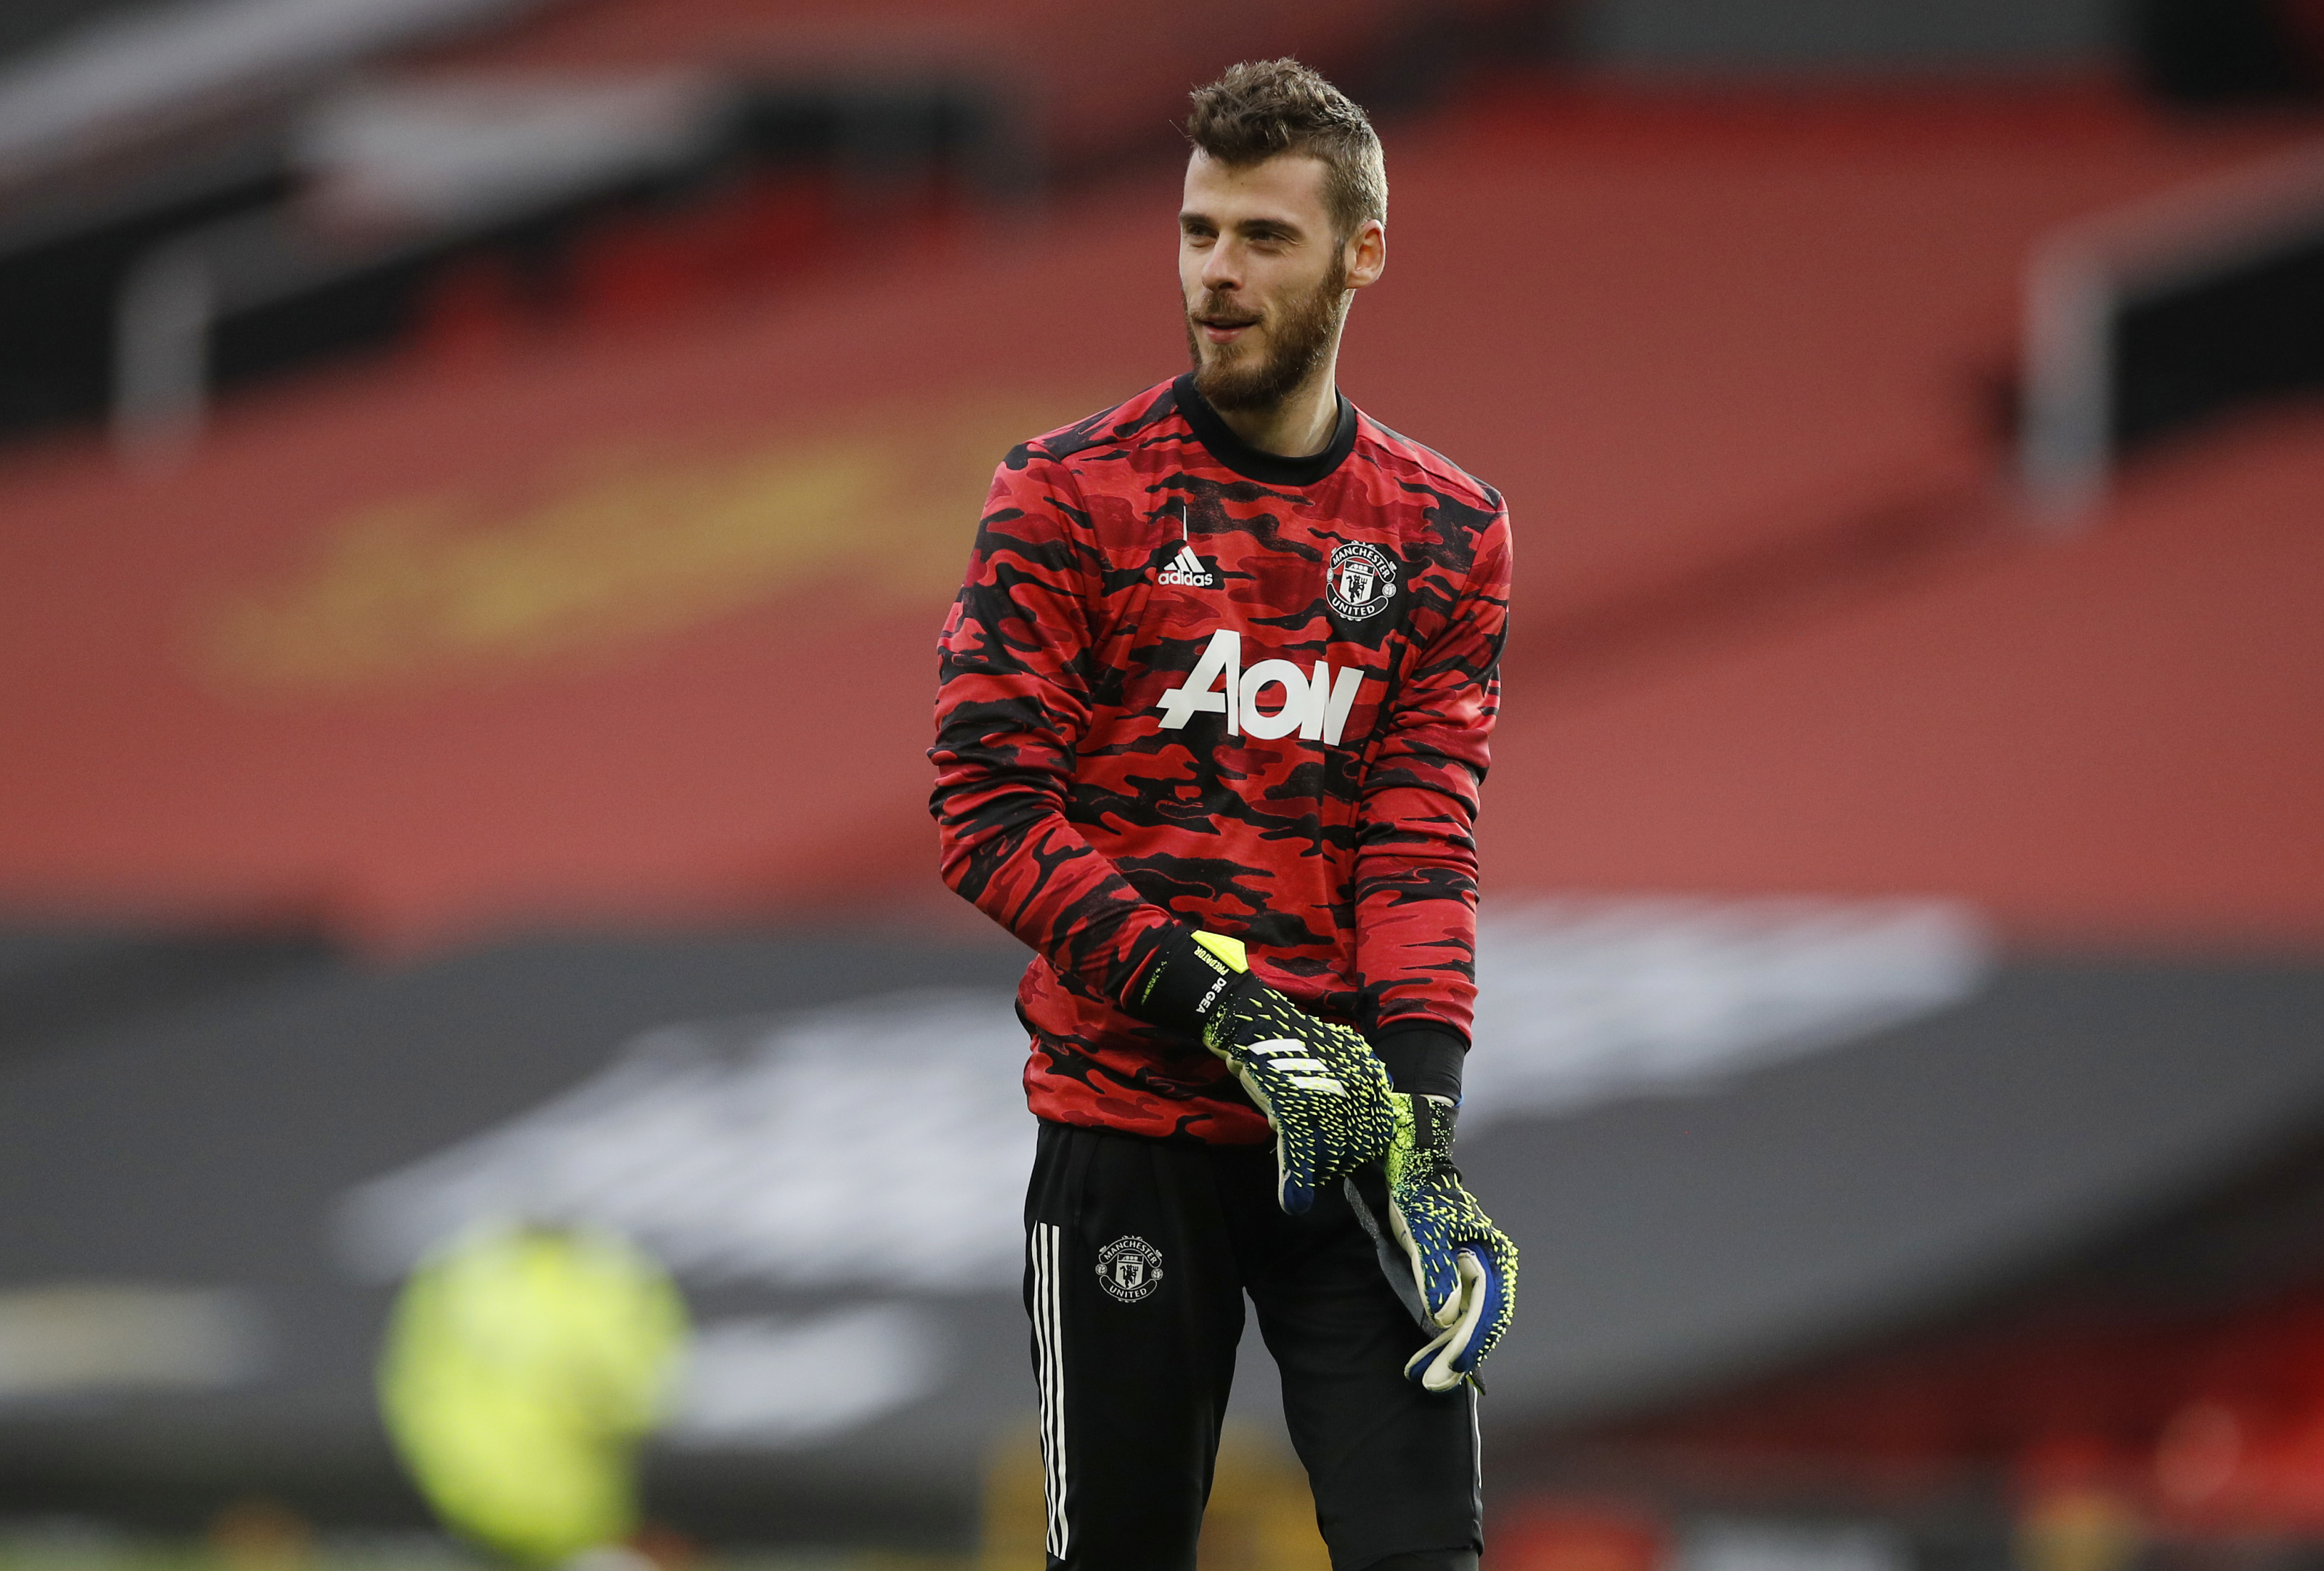 Why Manchester United fans need to stop disrespecting David de Gea